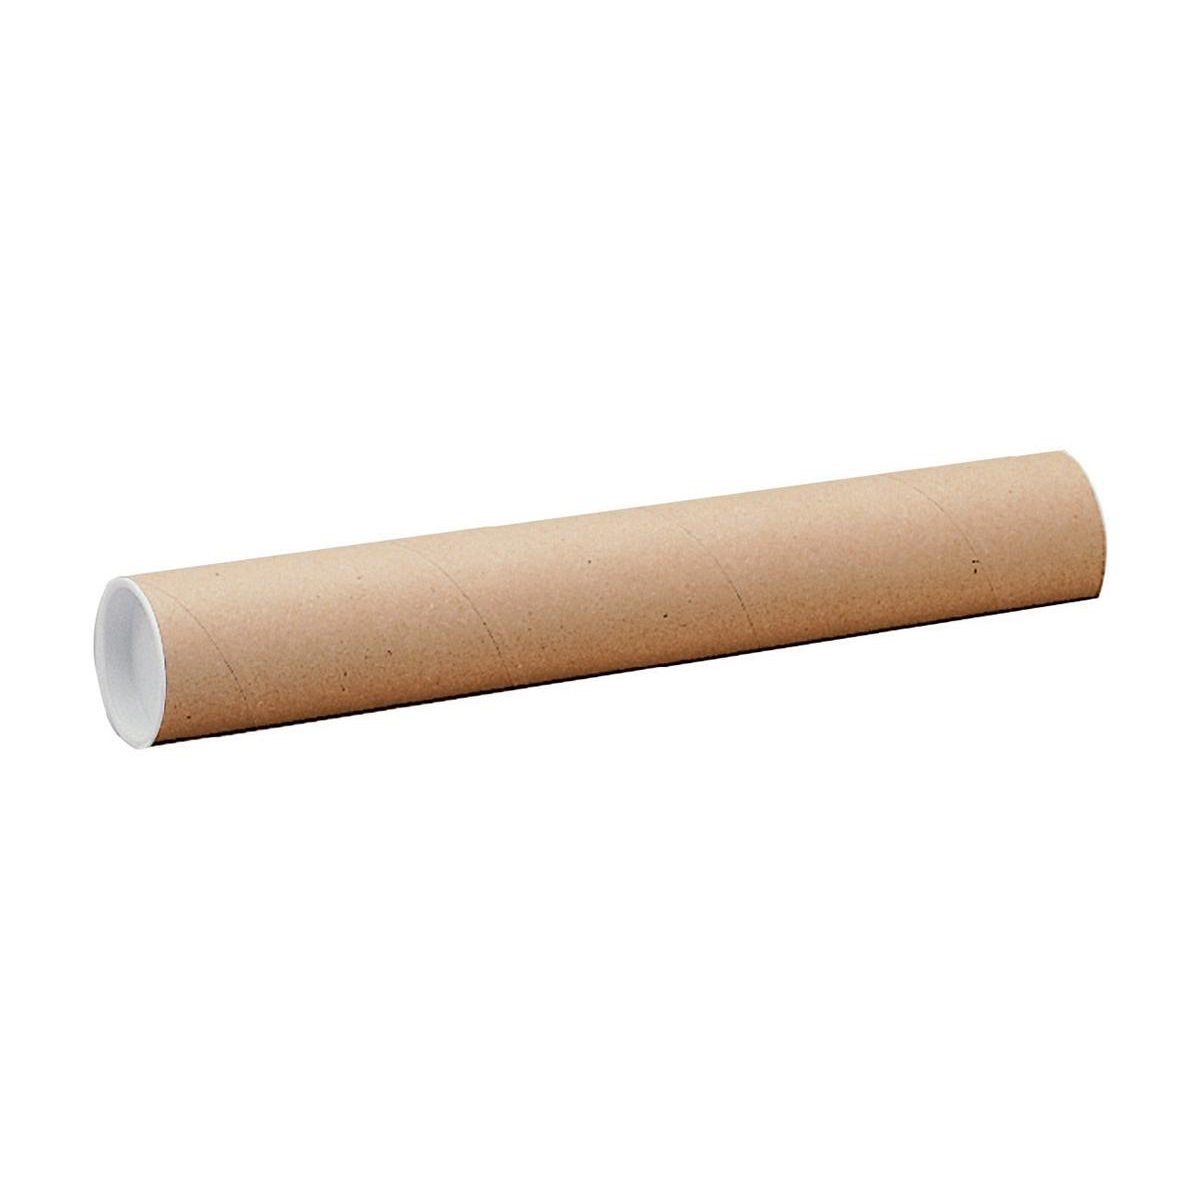 Postal Tube Cardboard with Plastic End Caps L720xDia.102mm PT 720/102MM Pack 12